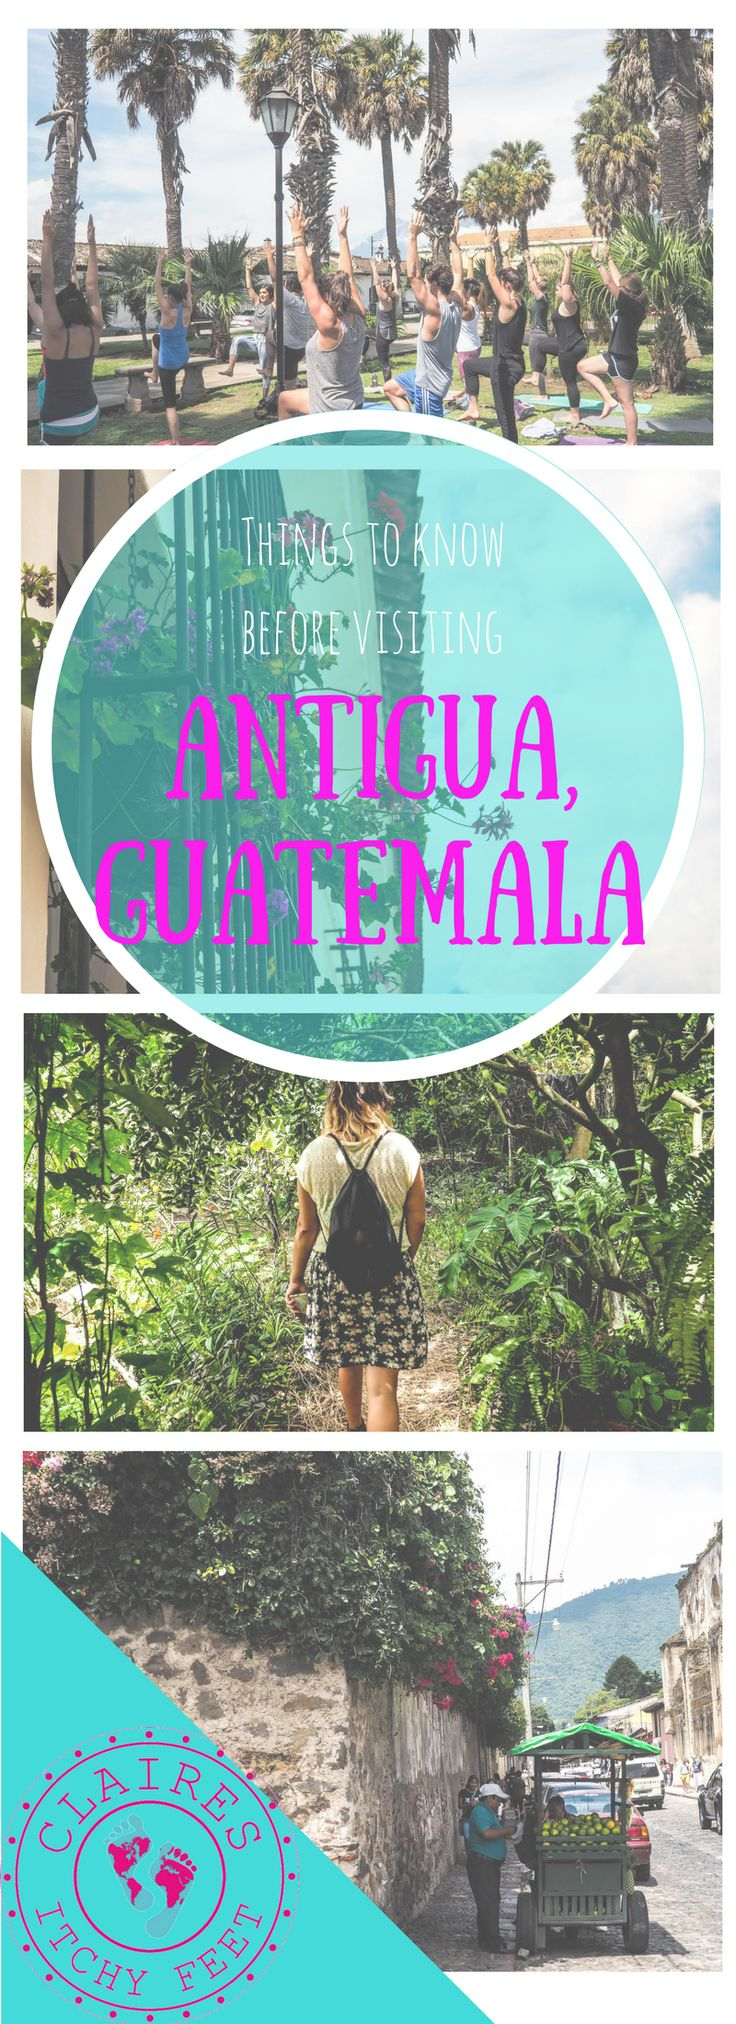 Planning a trip to Antigua Guatemala? Antigua is one of the most visited places in Guatemala and most travelers traveling through Central America at some point pass through Antigua, even if it's just for a few days. Whether it's for sightseeing, volcano hiking or to learn Spanish at one of Antigua's many language schools there are a few things you should know before you arrive.